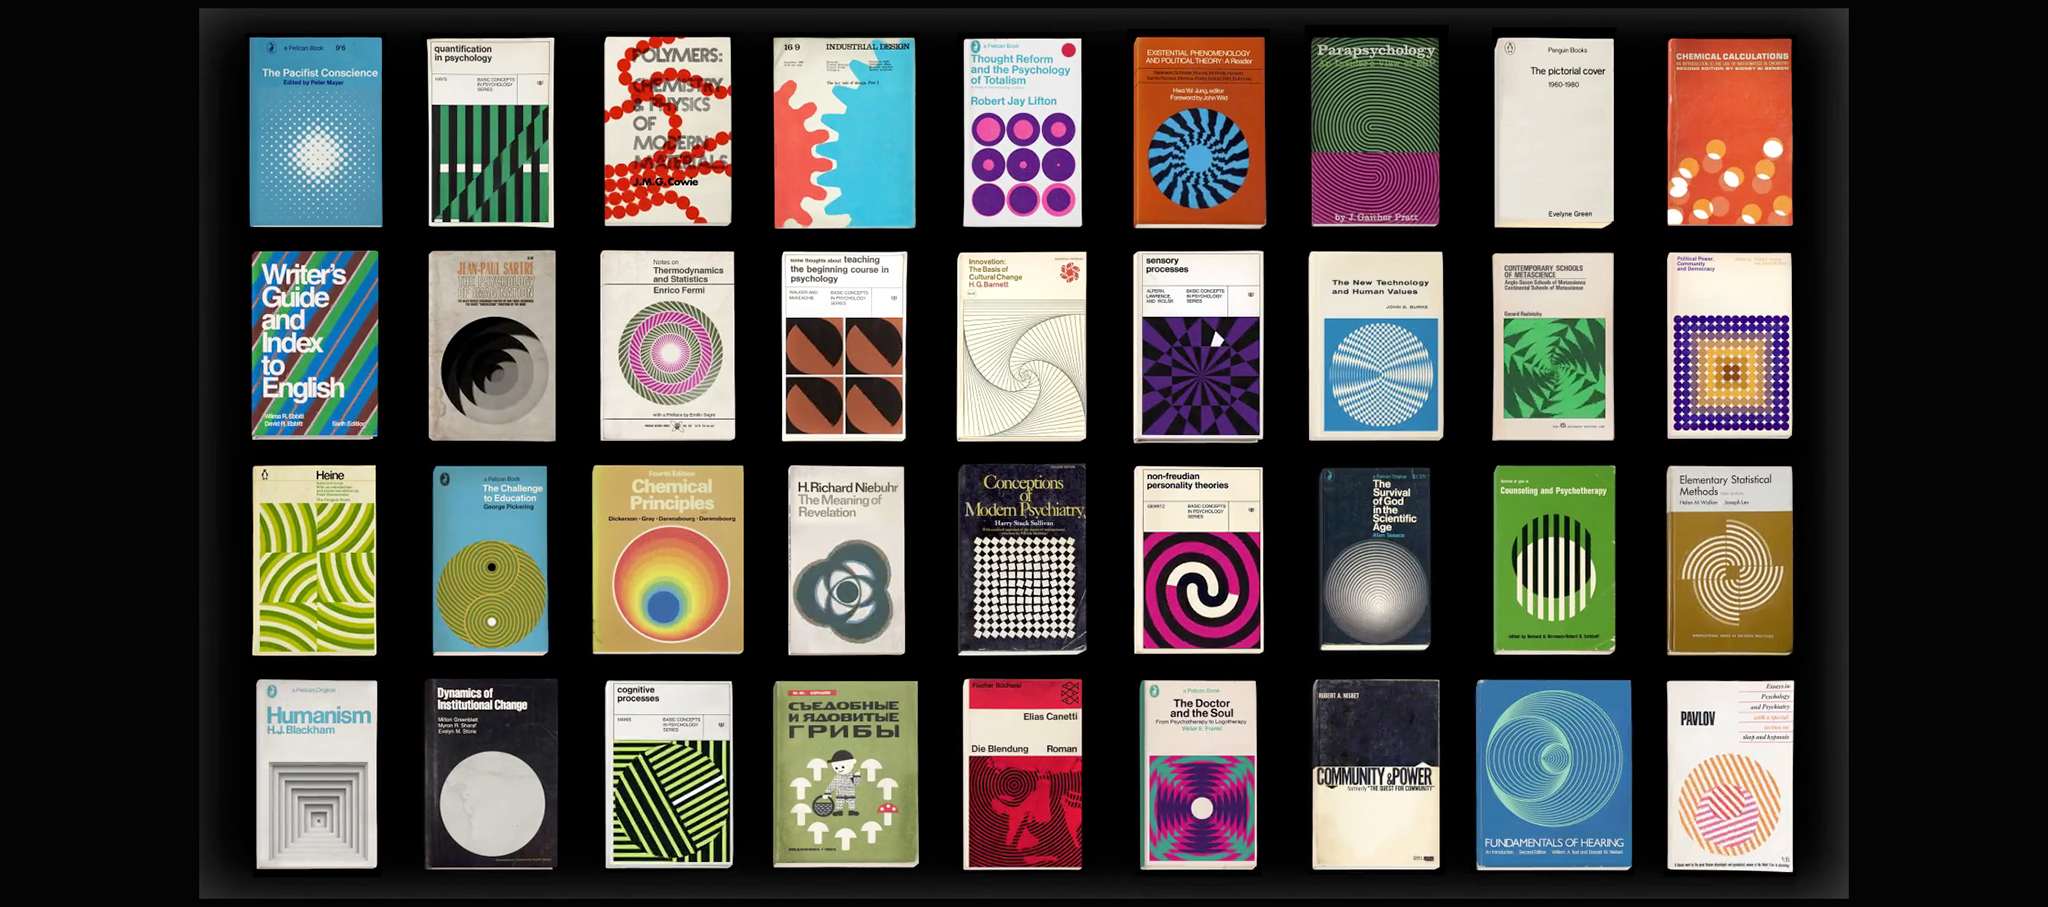 More Covers por Henning M. Lederer